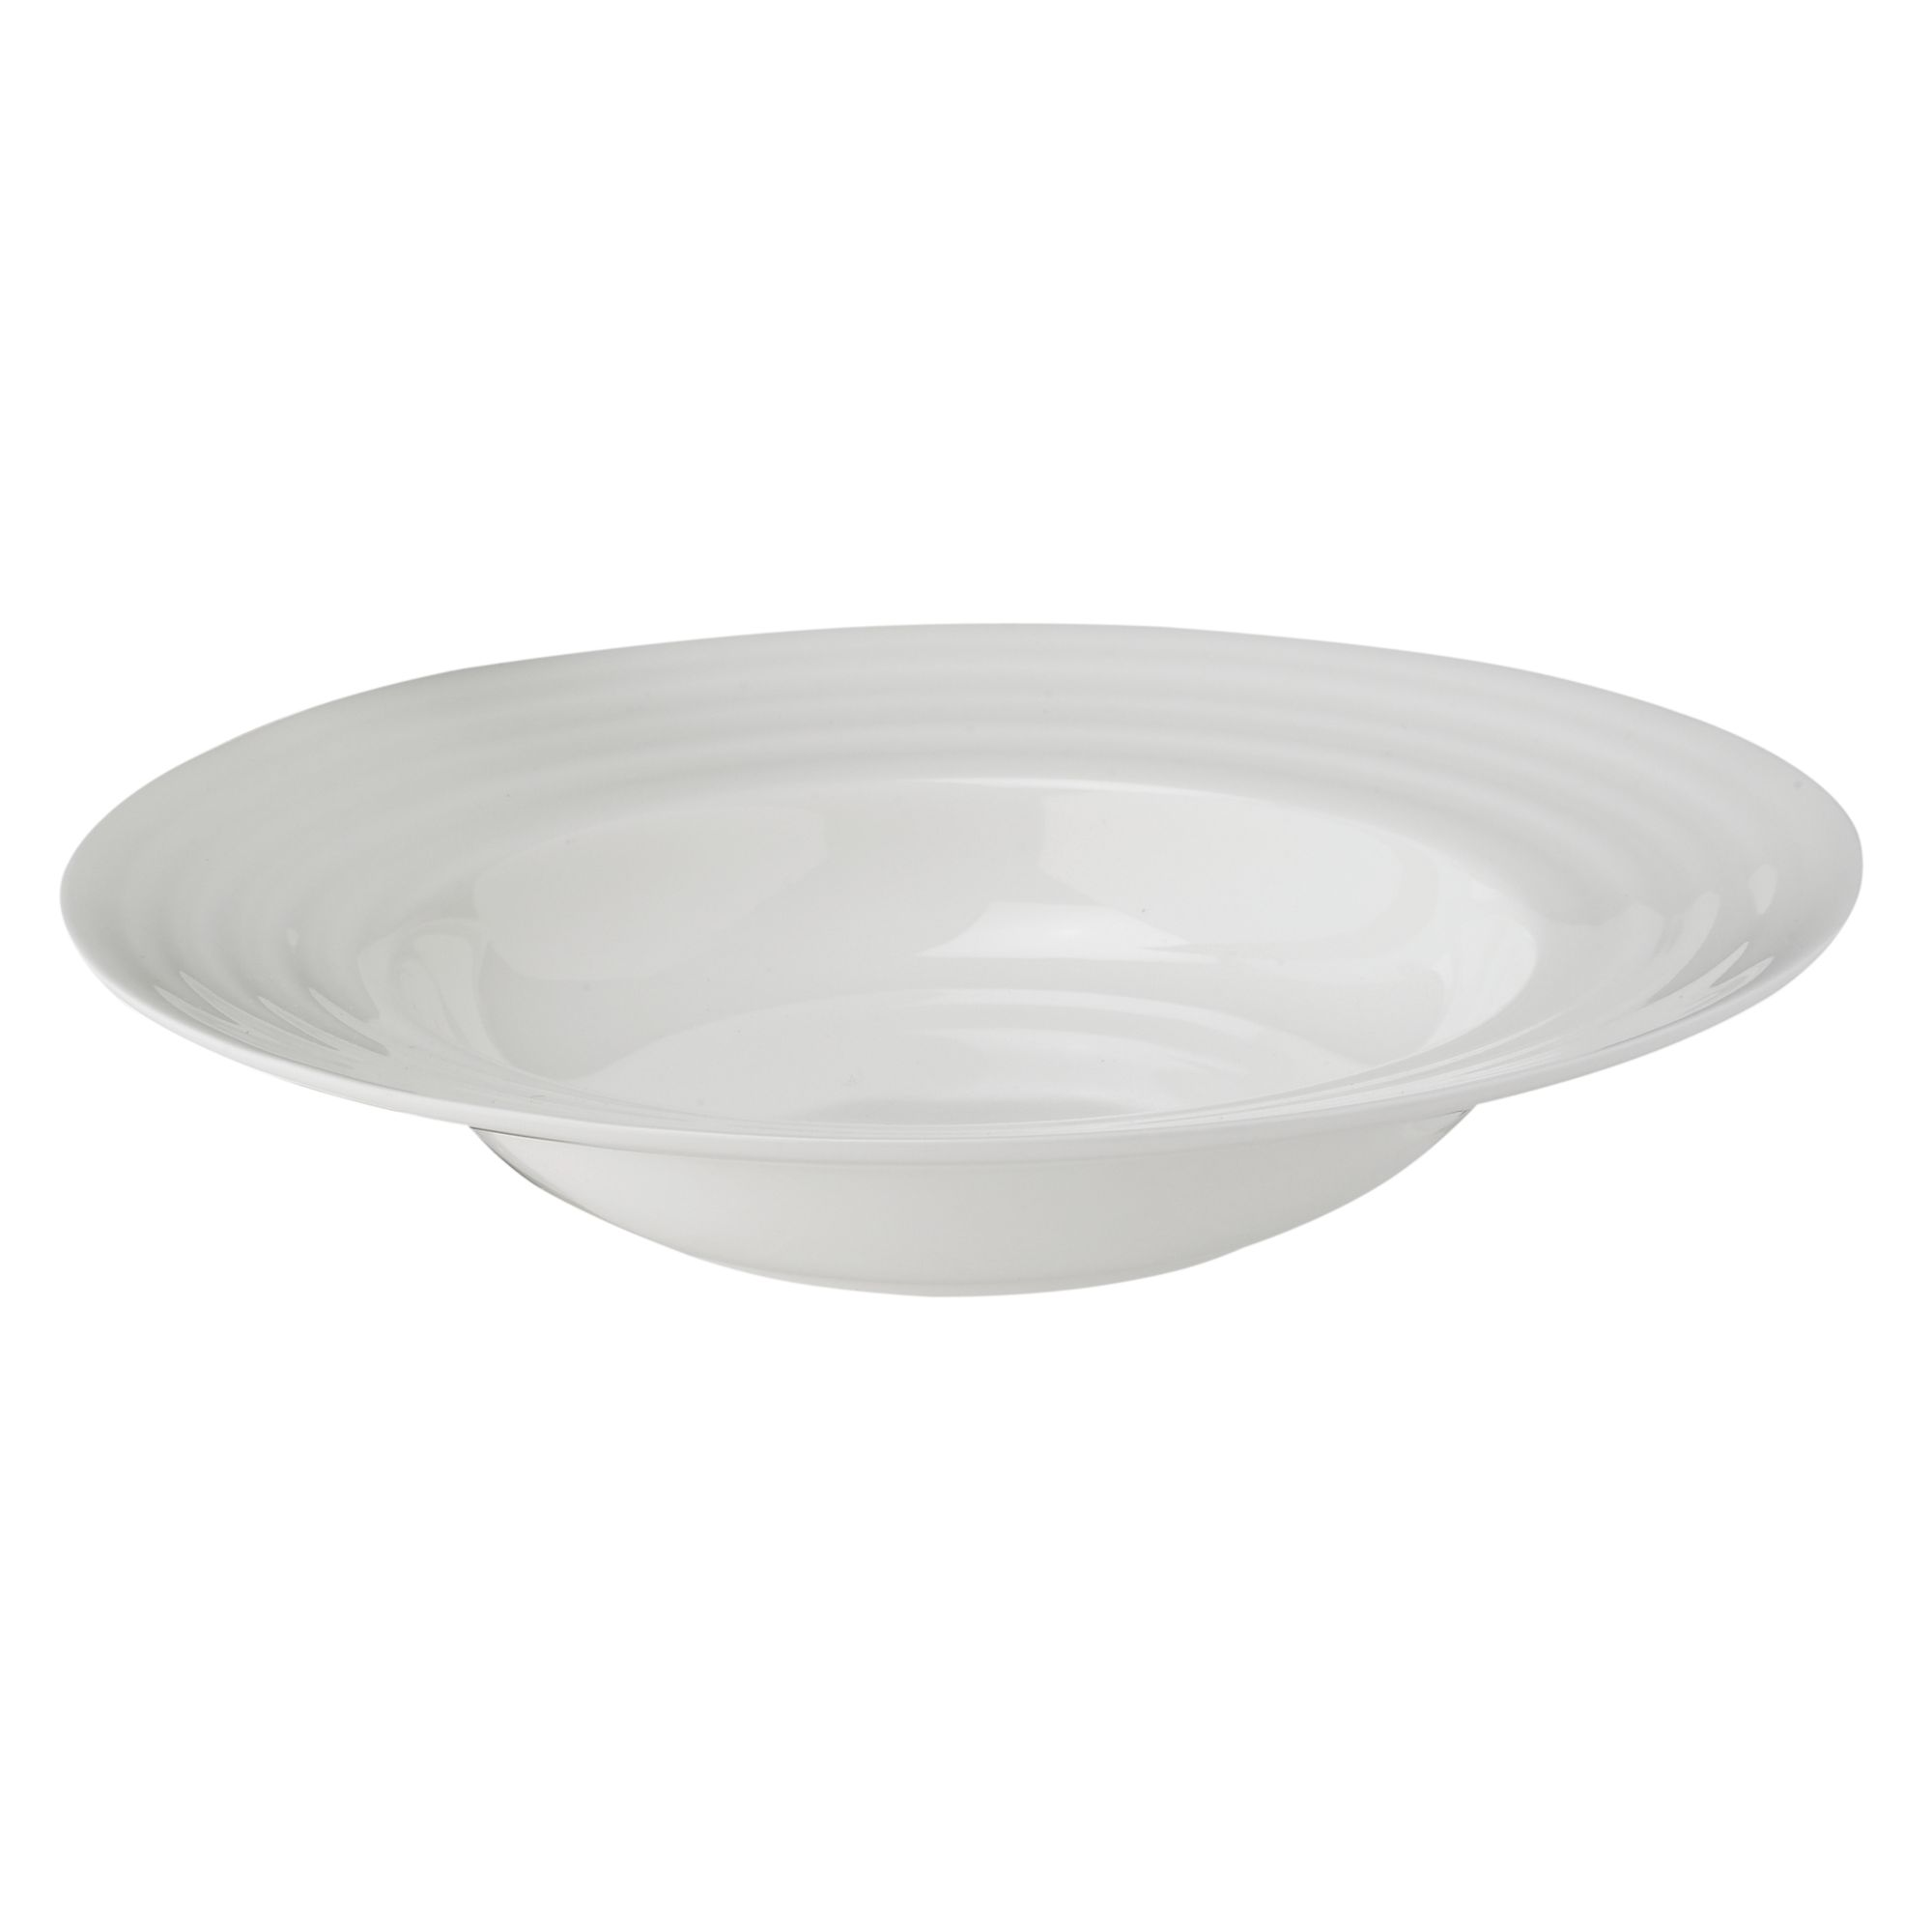 Soho Bone China Rim Soup Plate